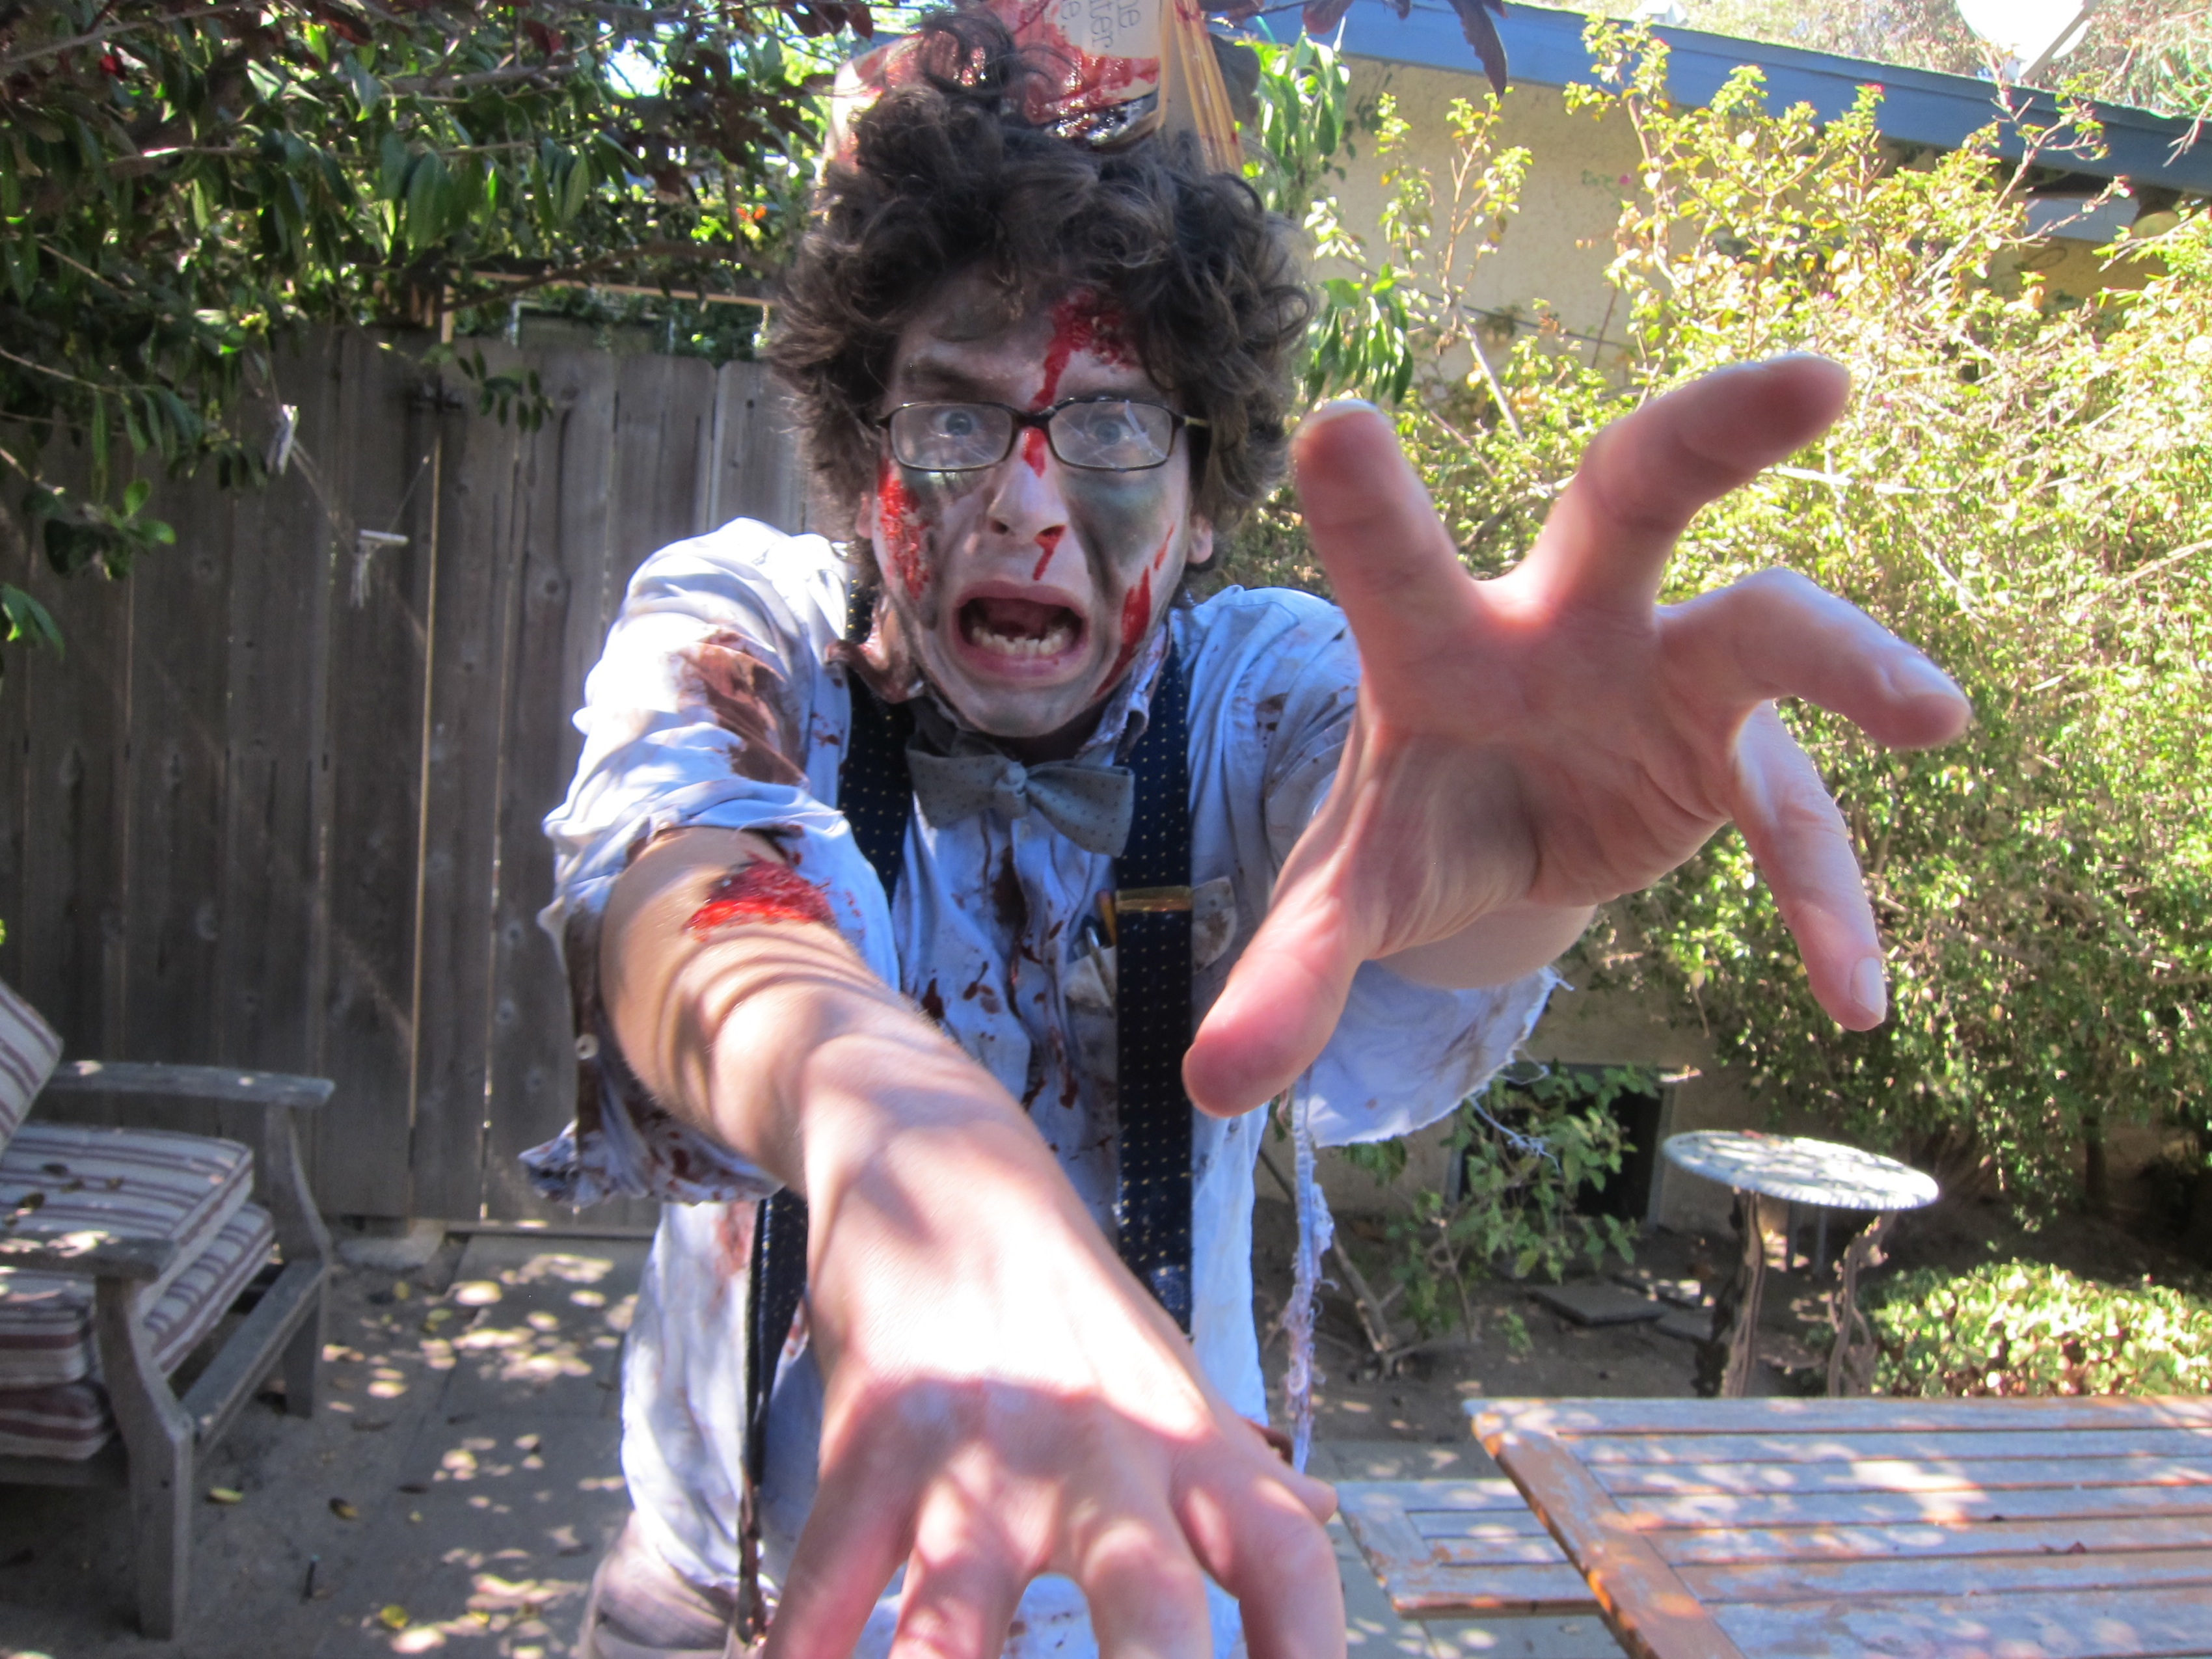 How to Make a Zombie Nerd Costume